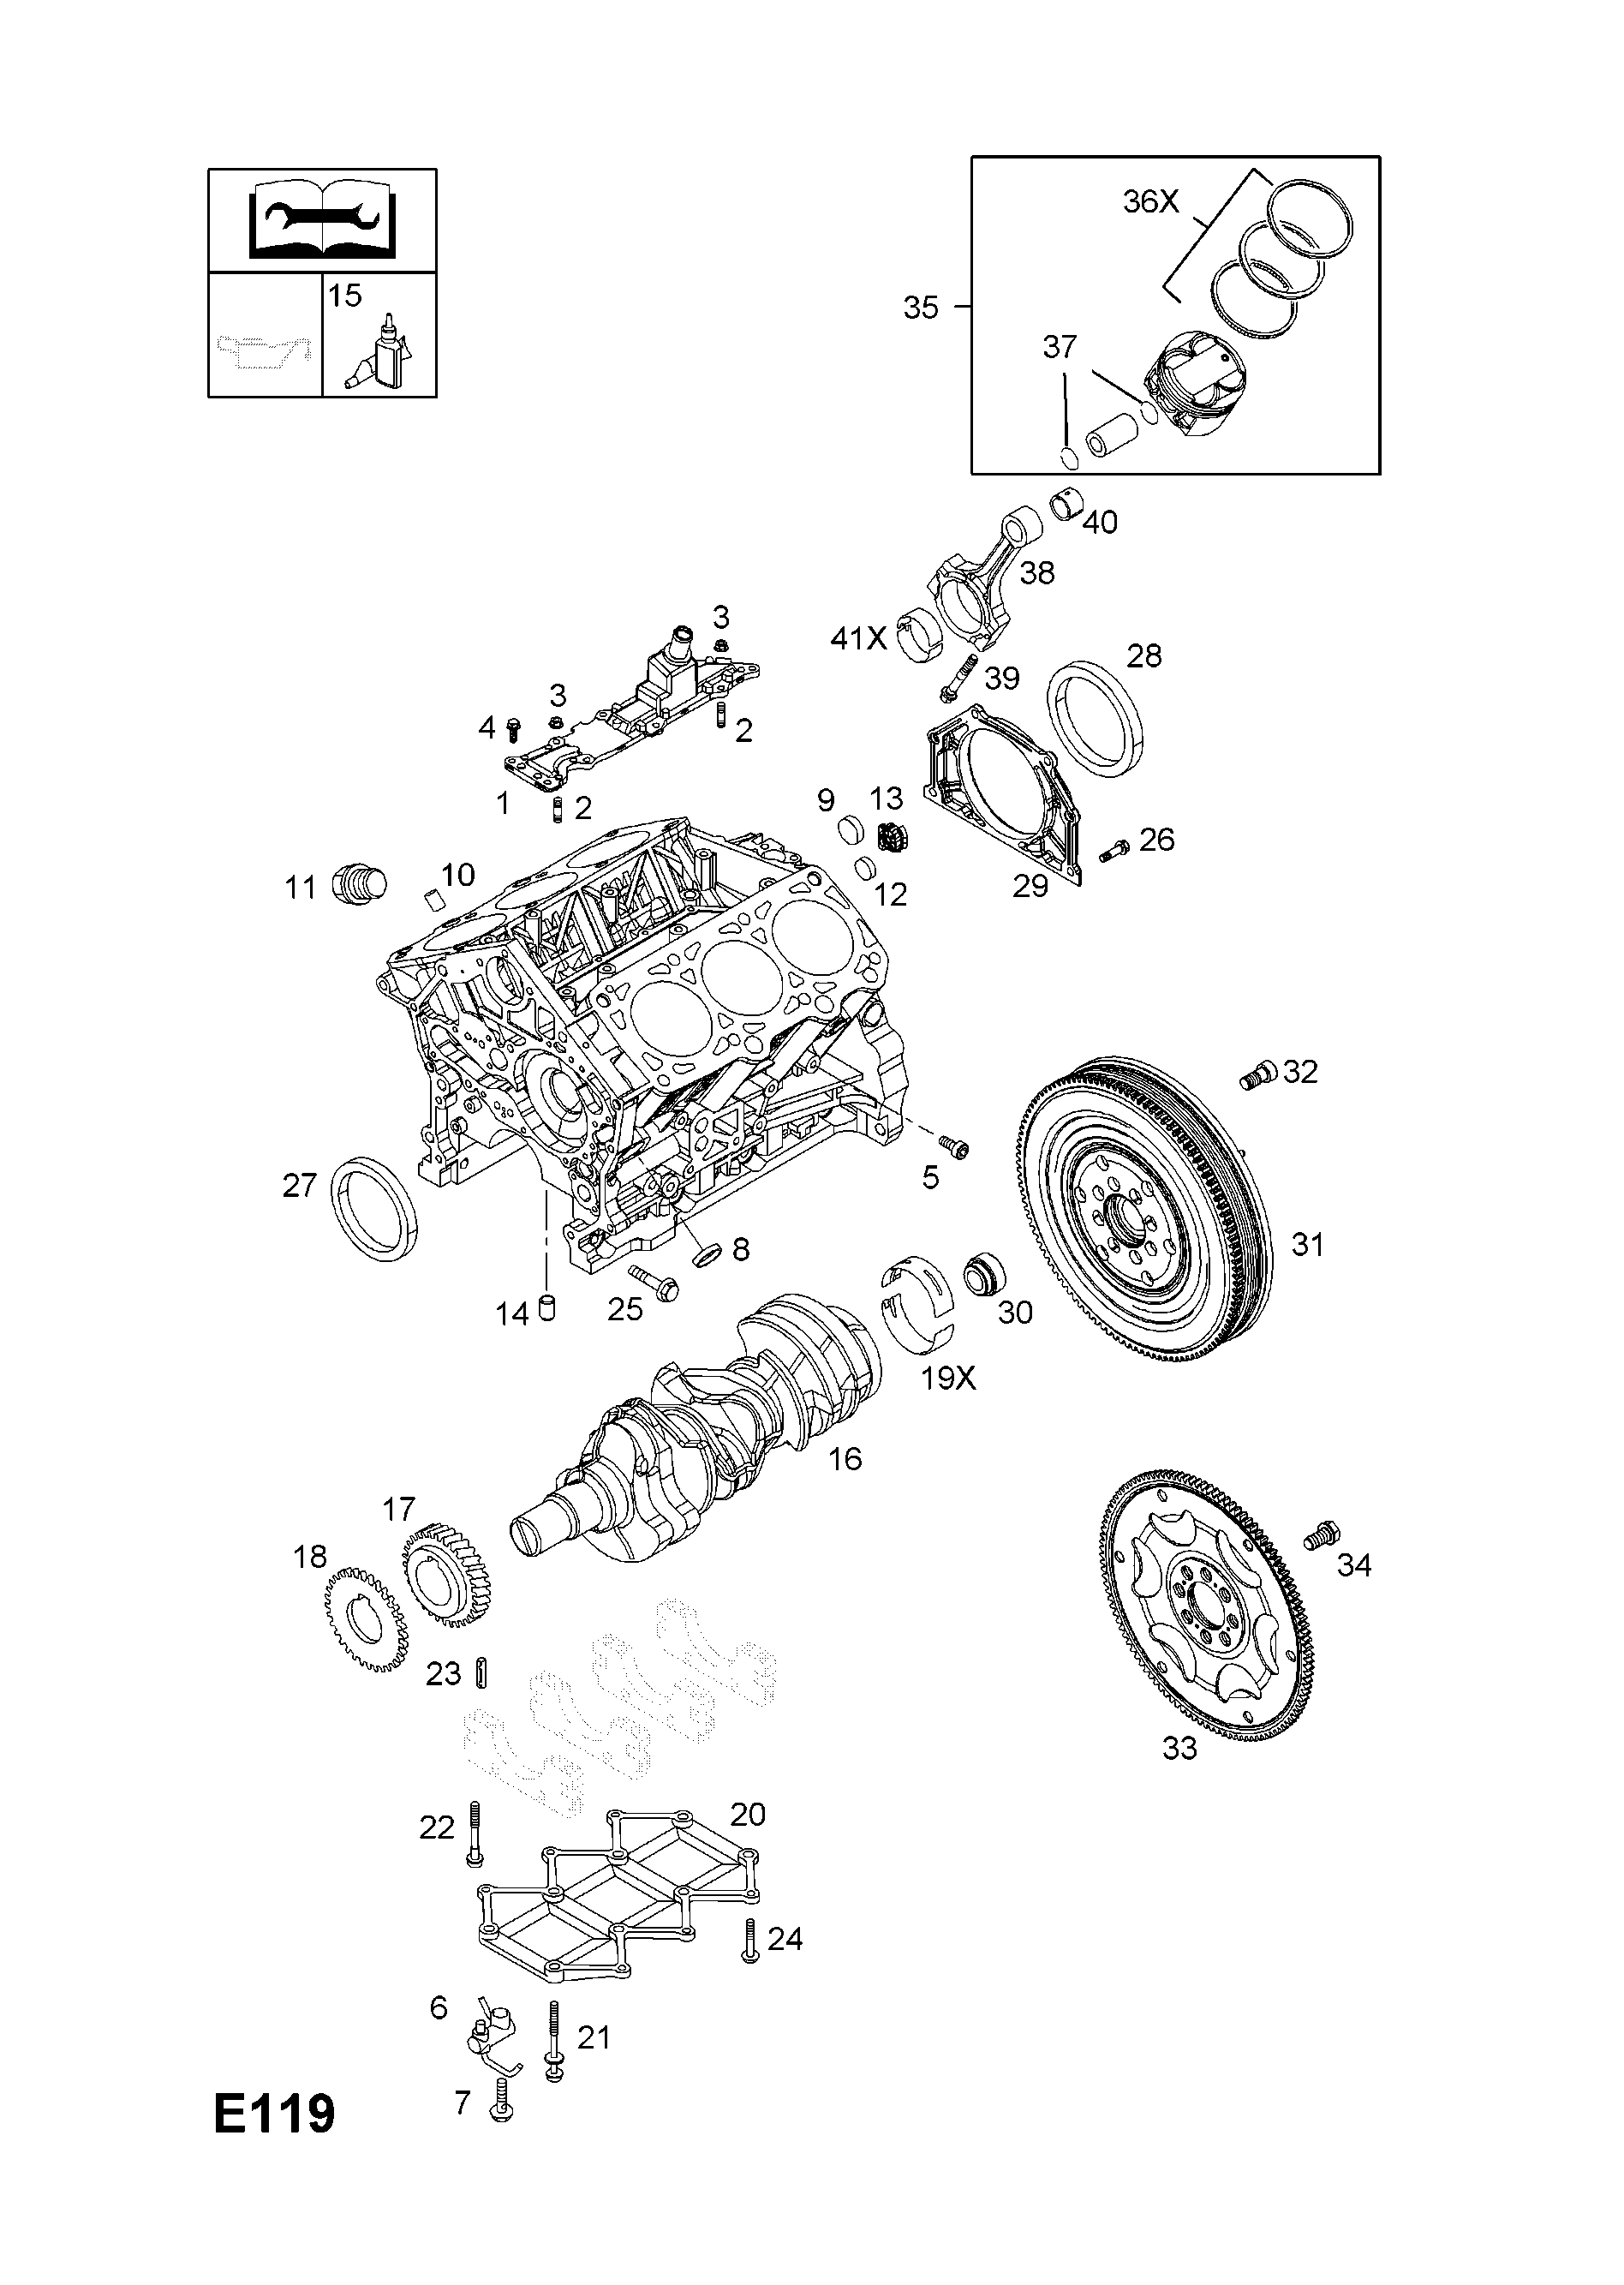 Opel Vectra C 2002 2008 E Engine And Clutch 15 Z30dtldh Cat 236 Diagram List Of Parts